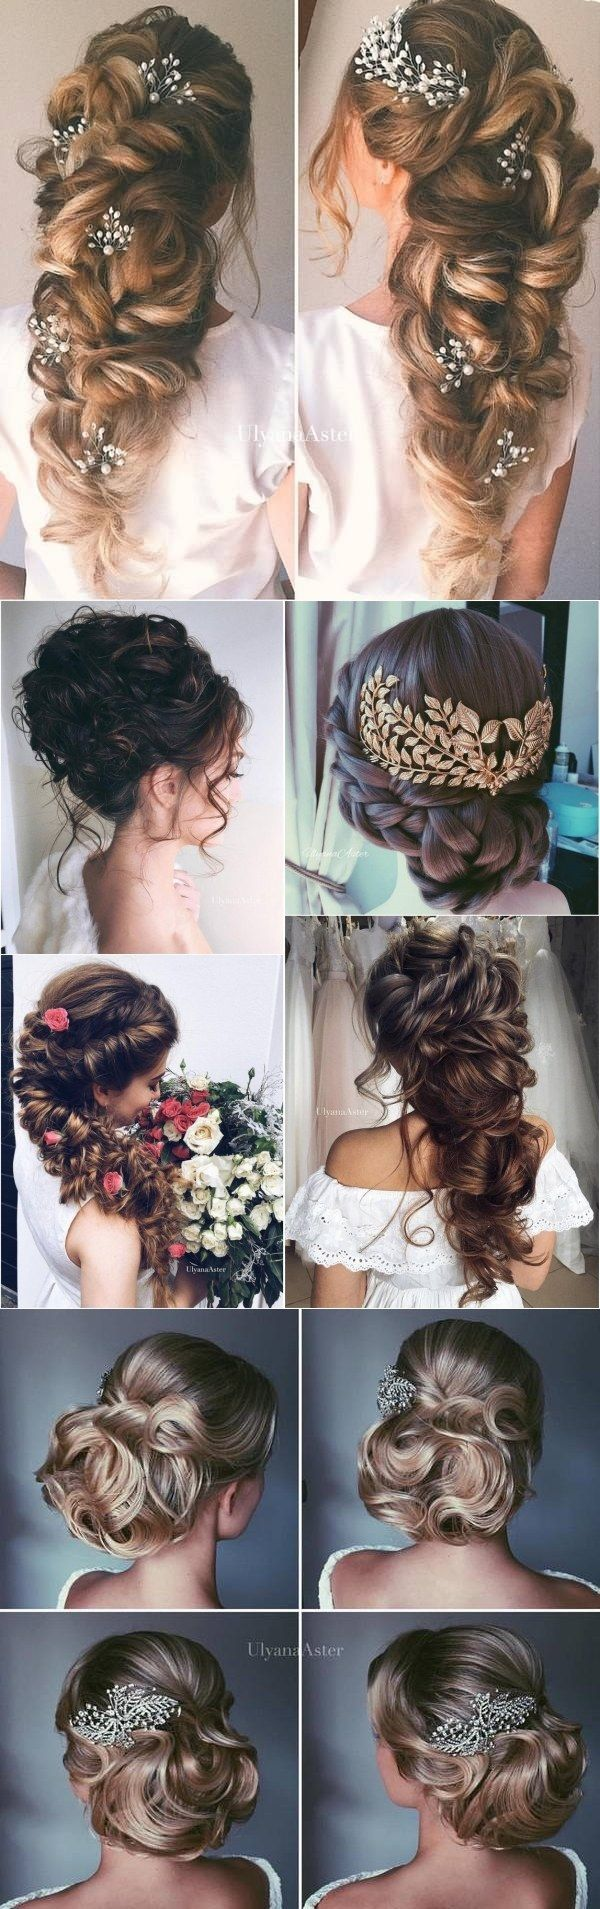 Ulyana Aster Wedding Hairstyles for Long Hair